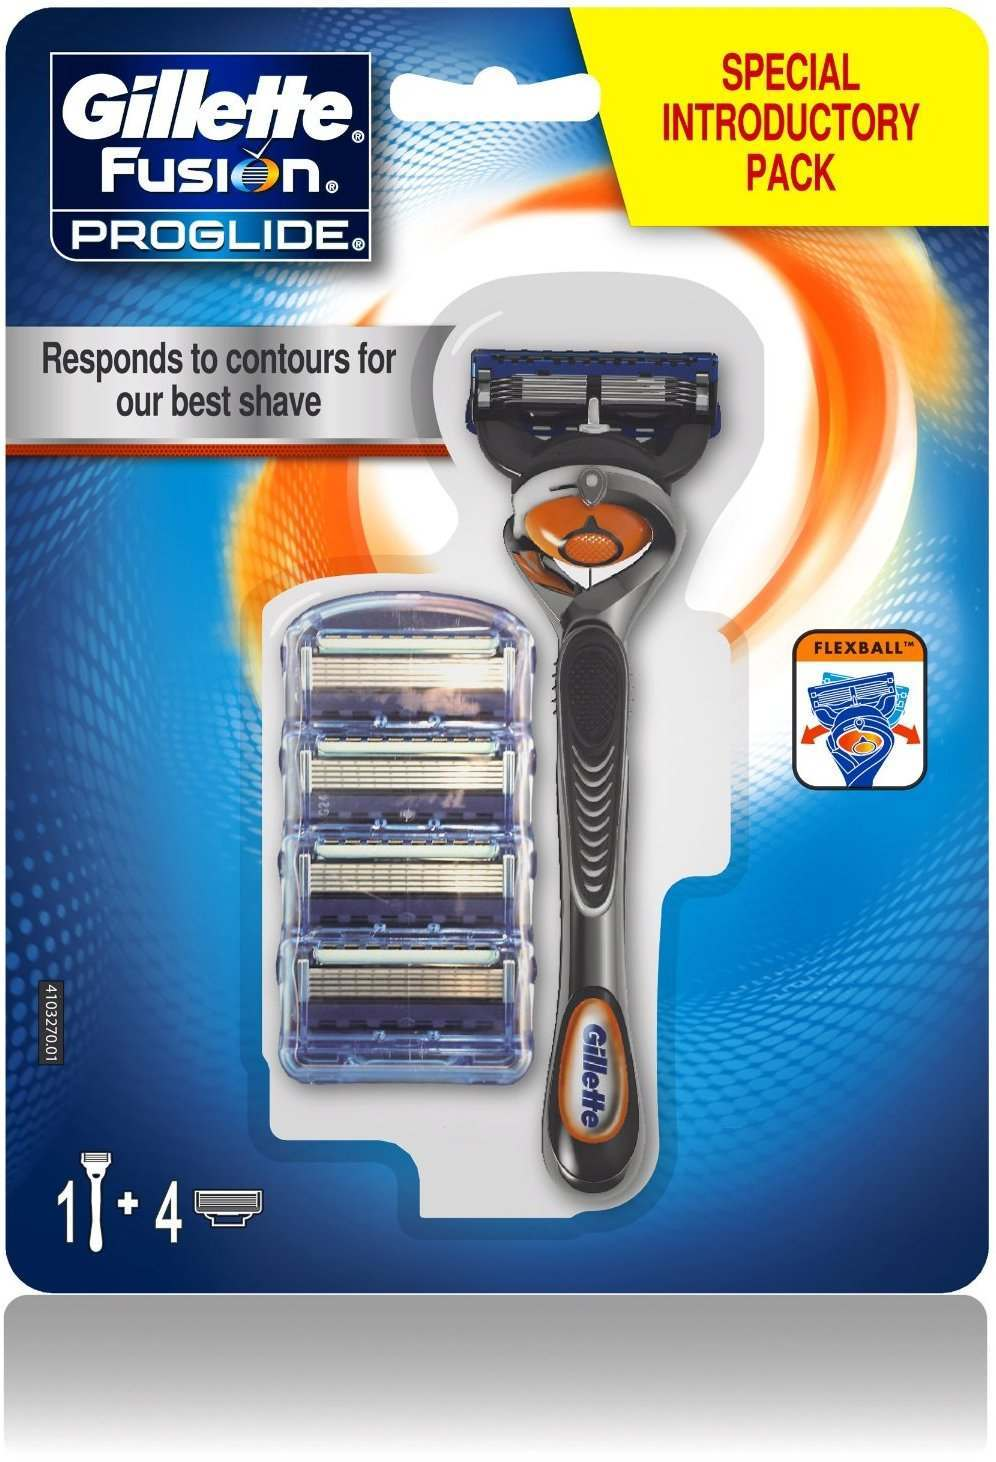 Gillette 81560202 Fusion Proglide Flexball Pack of 4 Blades with Razor